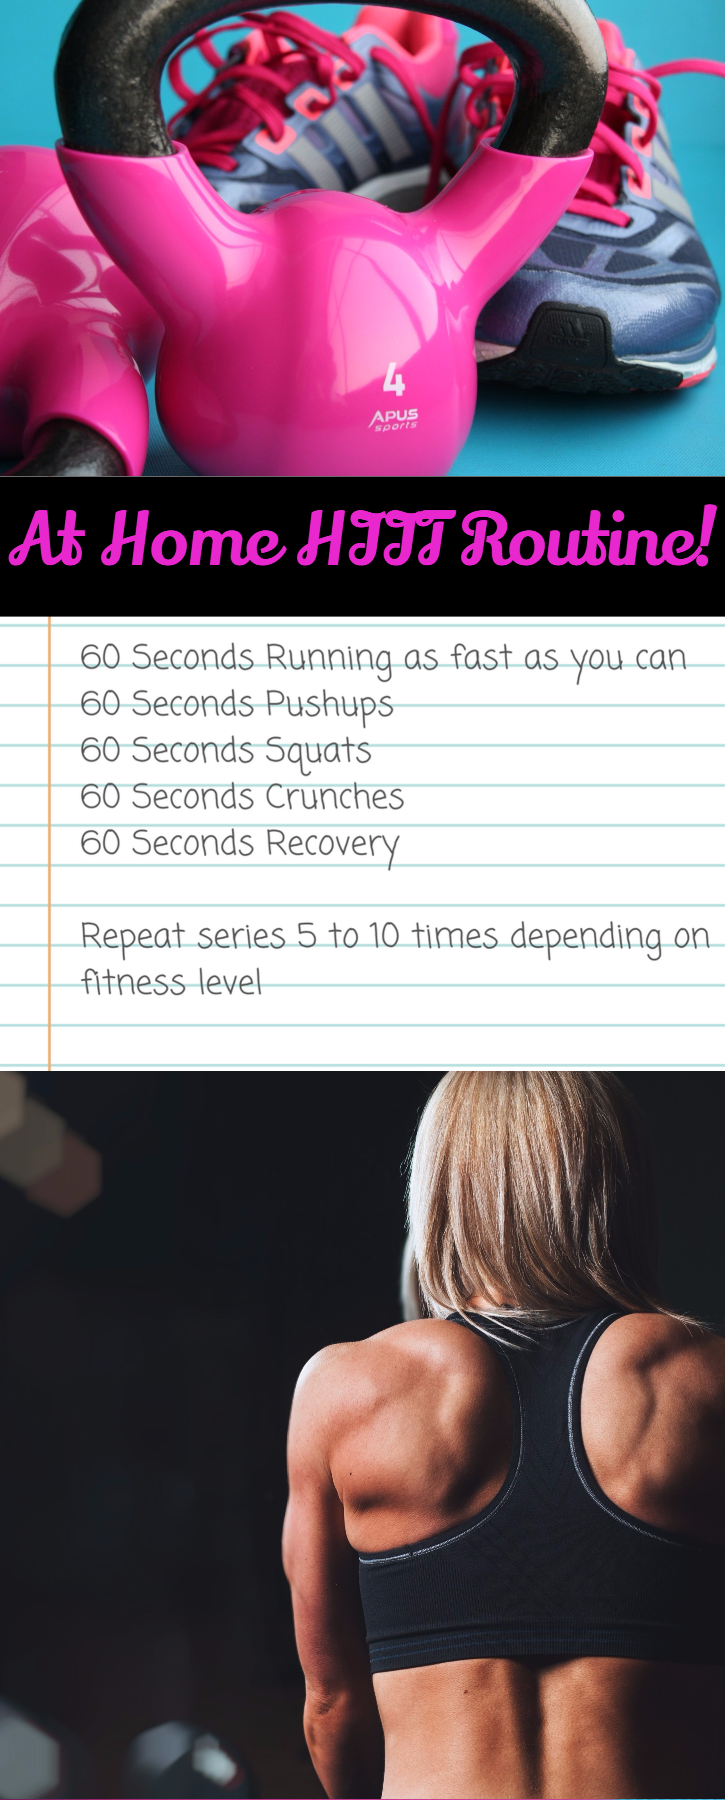 At home HIIT Routine - The best exercise for weight loss so get the benefits at home Cardio/ Strength/ Abs / Muscles/ Strong/ Diet / Gym/ Running/